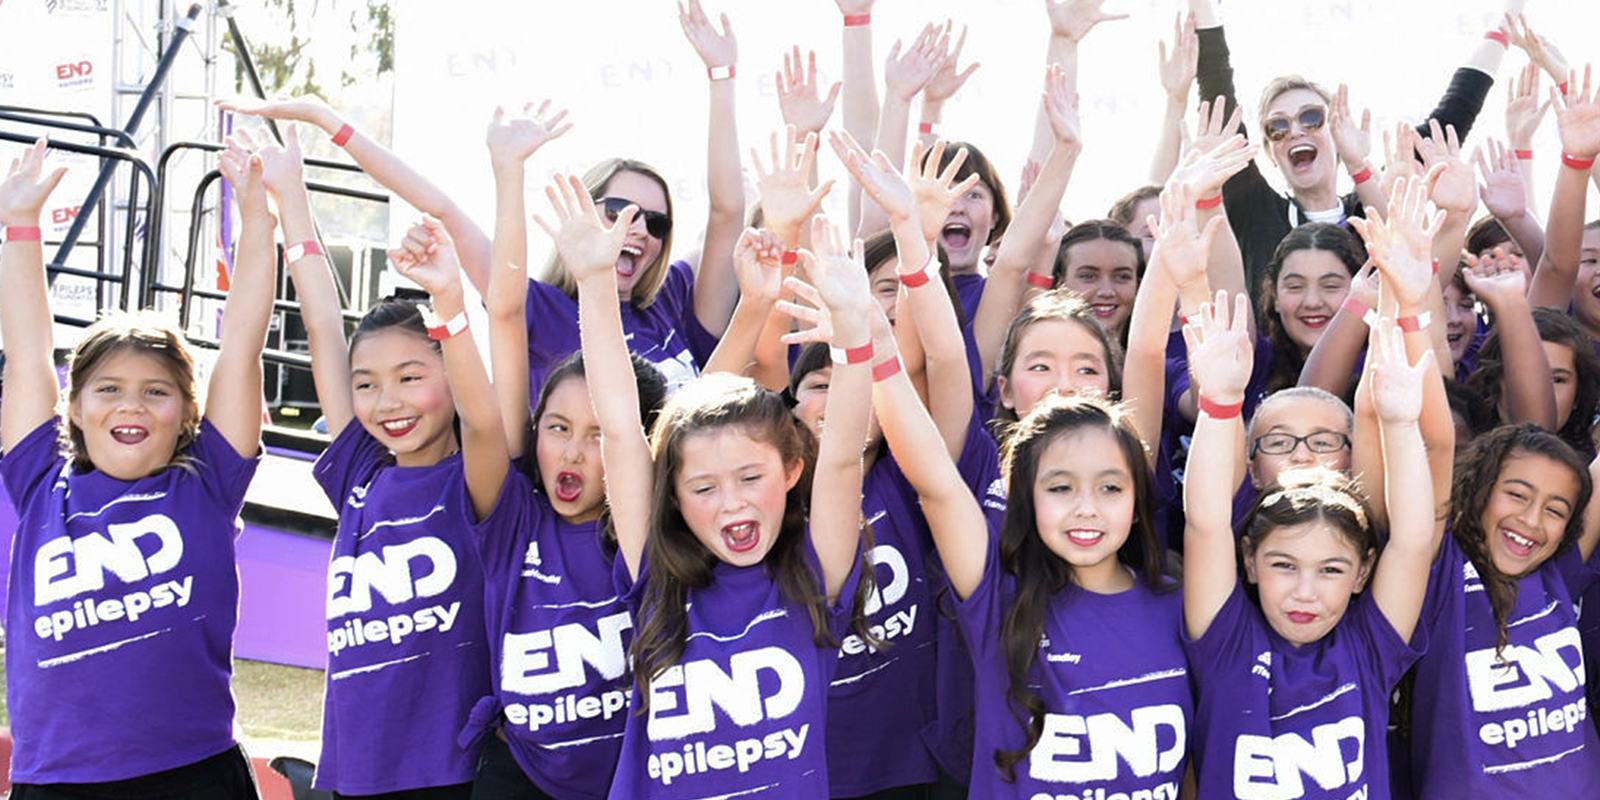 Join Empatica at the 2019 Walk to End Epilepsy in D.C.